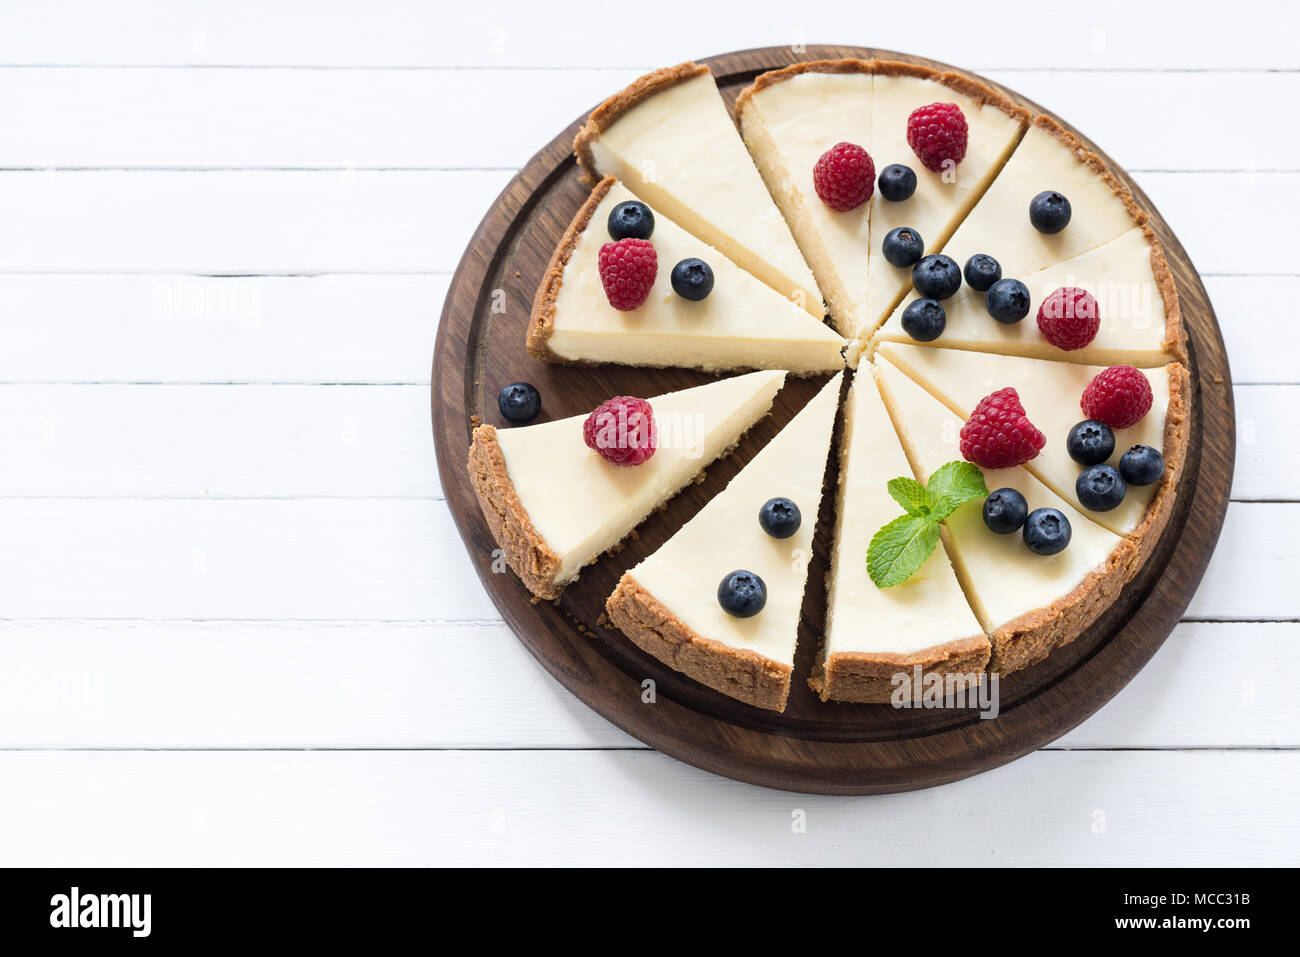 Cheesecake with summer berries cut into pieces on white background. Top view with copy space for text Stock Photo